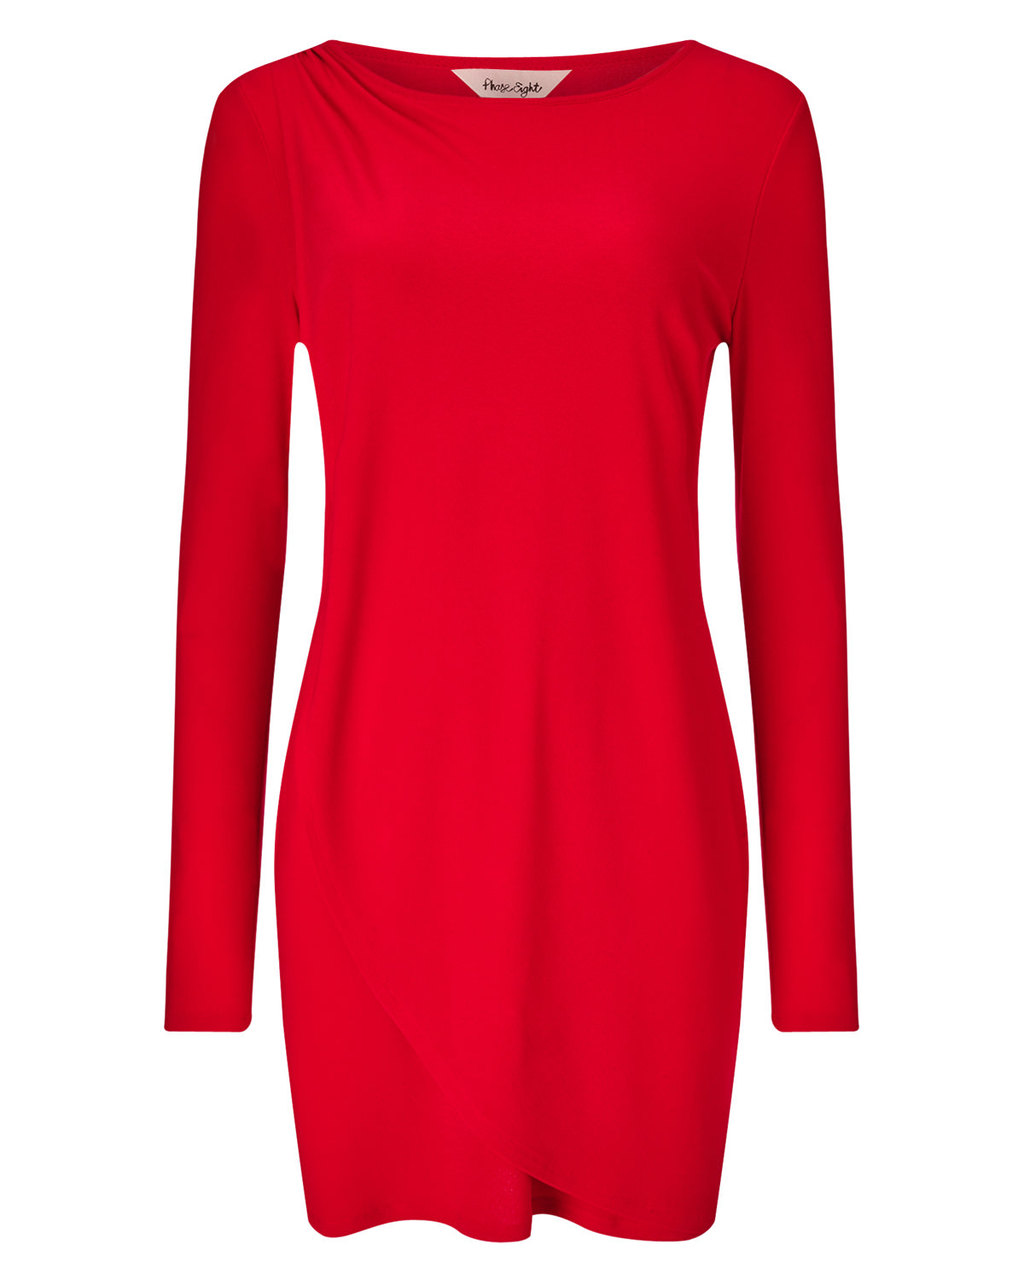 Dotty Draped Tunic - neckline: round neck; pattern: plain; style: tunic; predominant colour: true red; occasions: casual, creative work; fibres: cotton - 100%; fit: straight cut; length: mid thigh; sleeve length: long sleeve; sleeve style: standard; pattern type: fabric; texture group: jersey - stretchy/drapey; season: a/w 2015; wardrobe: highlight